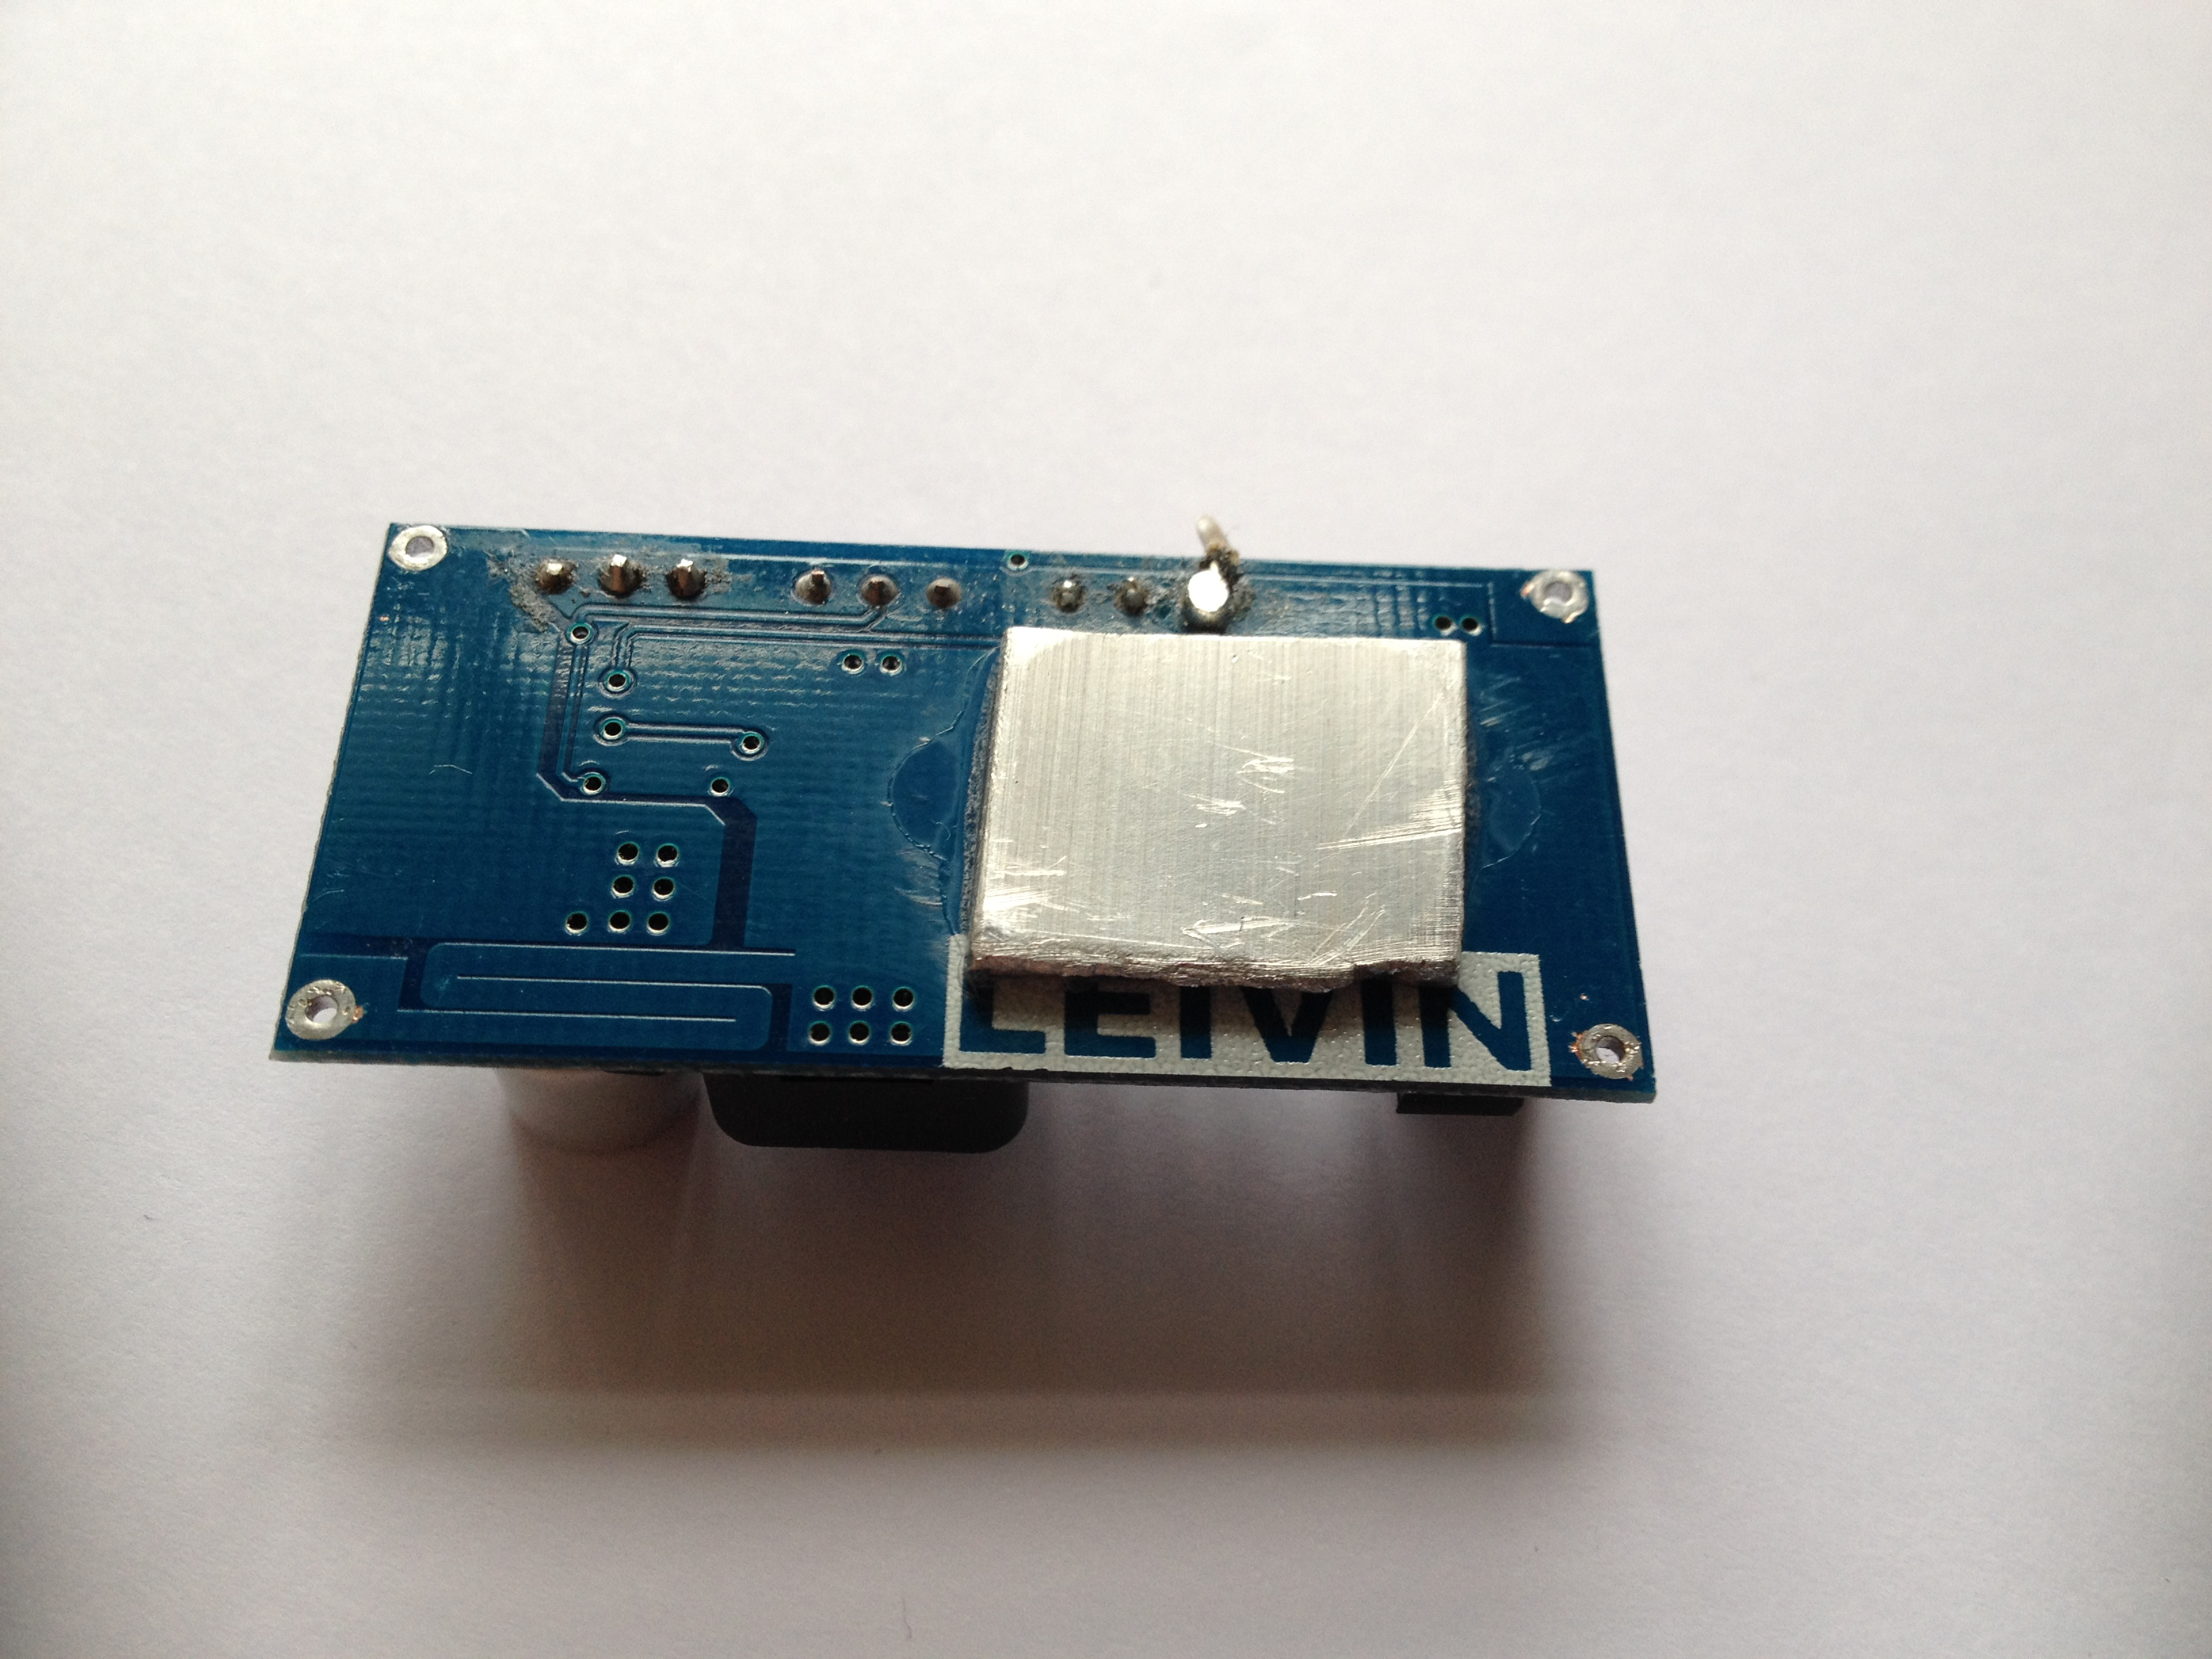 Picture of Heat-sink for the DC-DC Converter